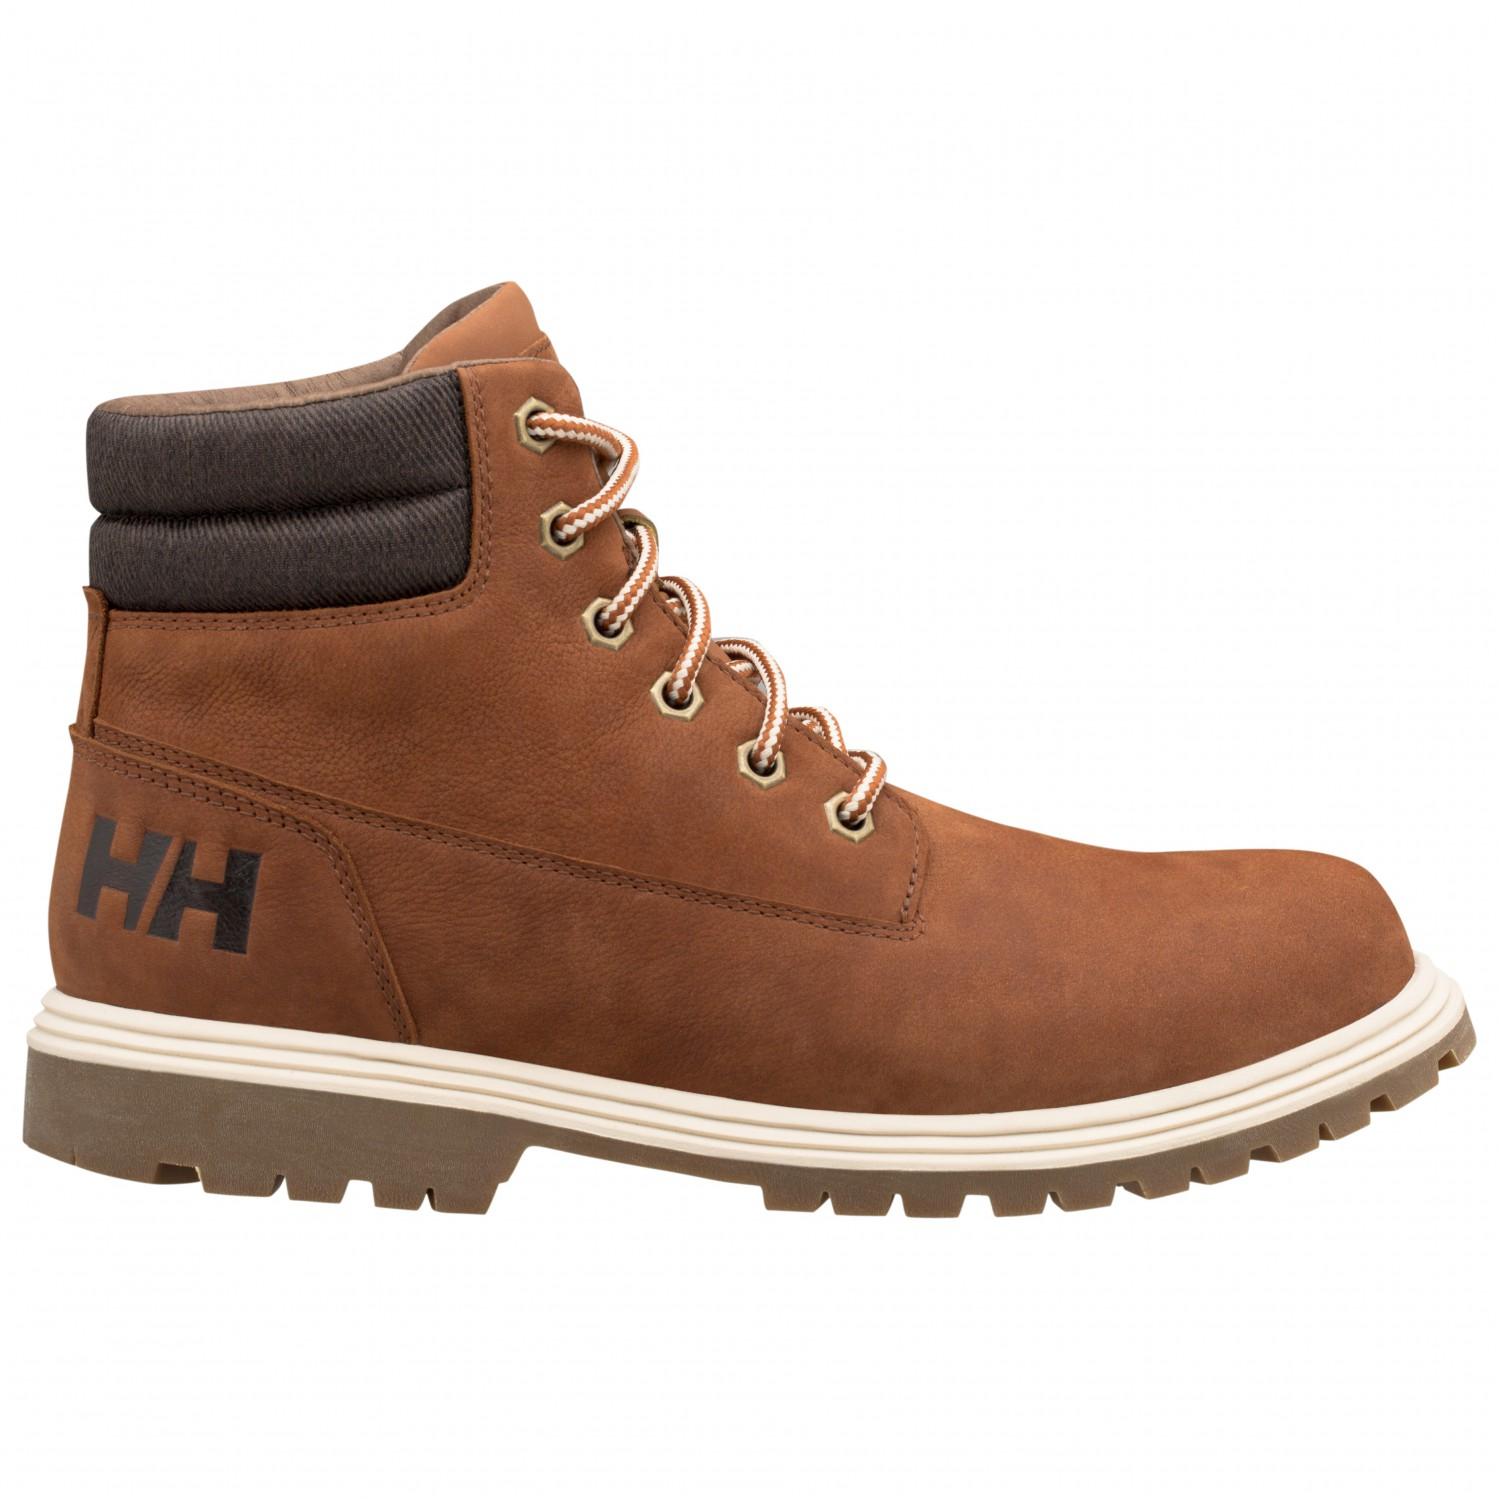 brand new 0b8b8 b731a Helly Hansen - Fremont - Casual boots - Light Espresso / Black / Dark Gum |  8 (US)